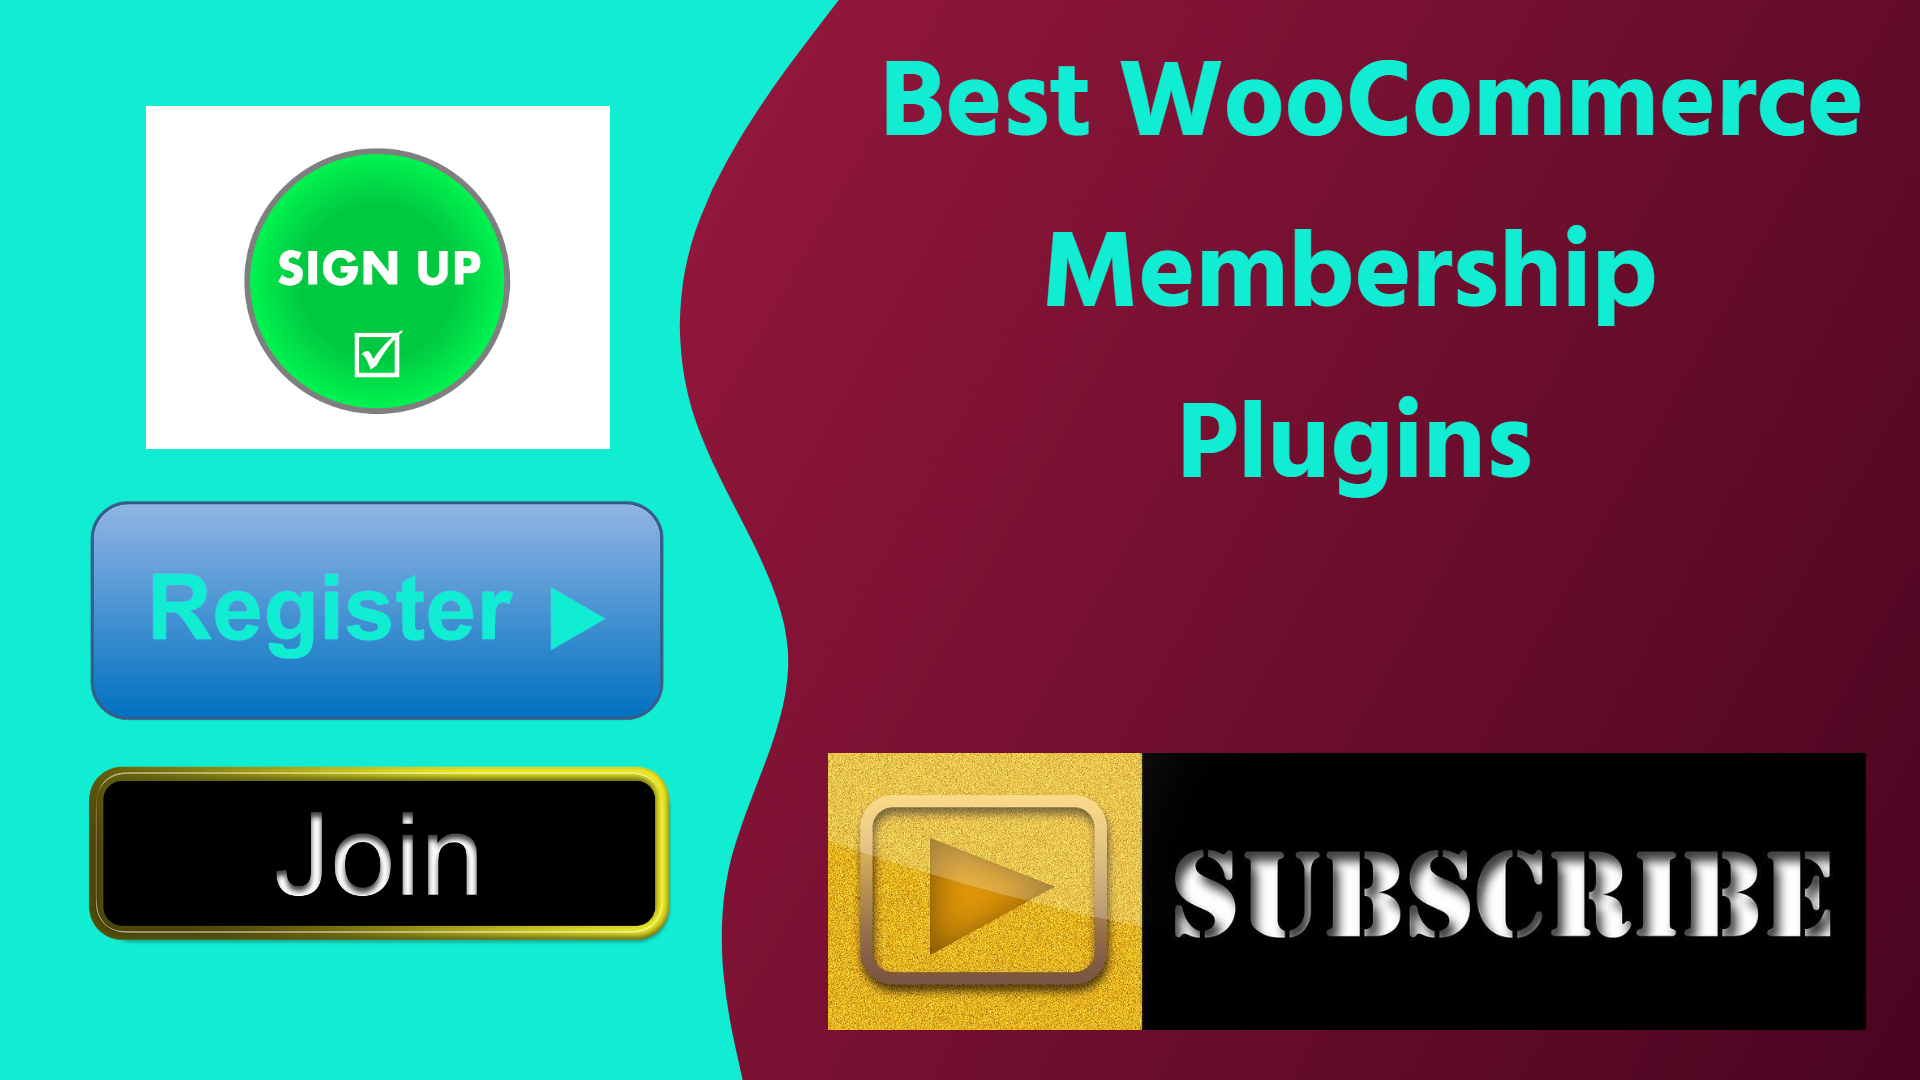 7 Best WooCommerce Membership Plugins for your site in 2020